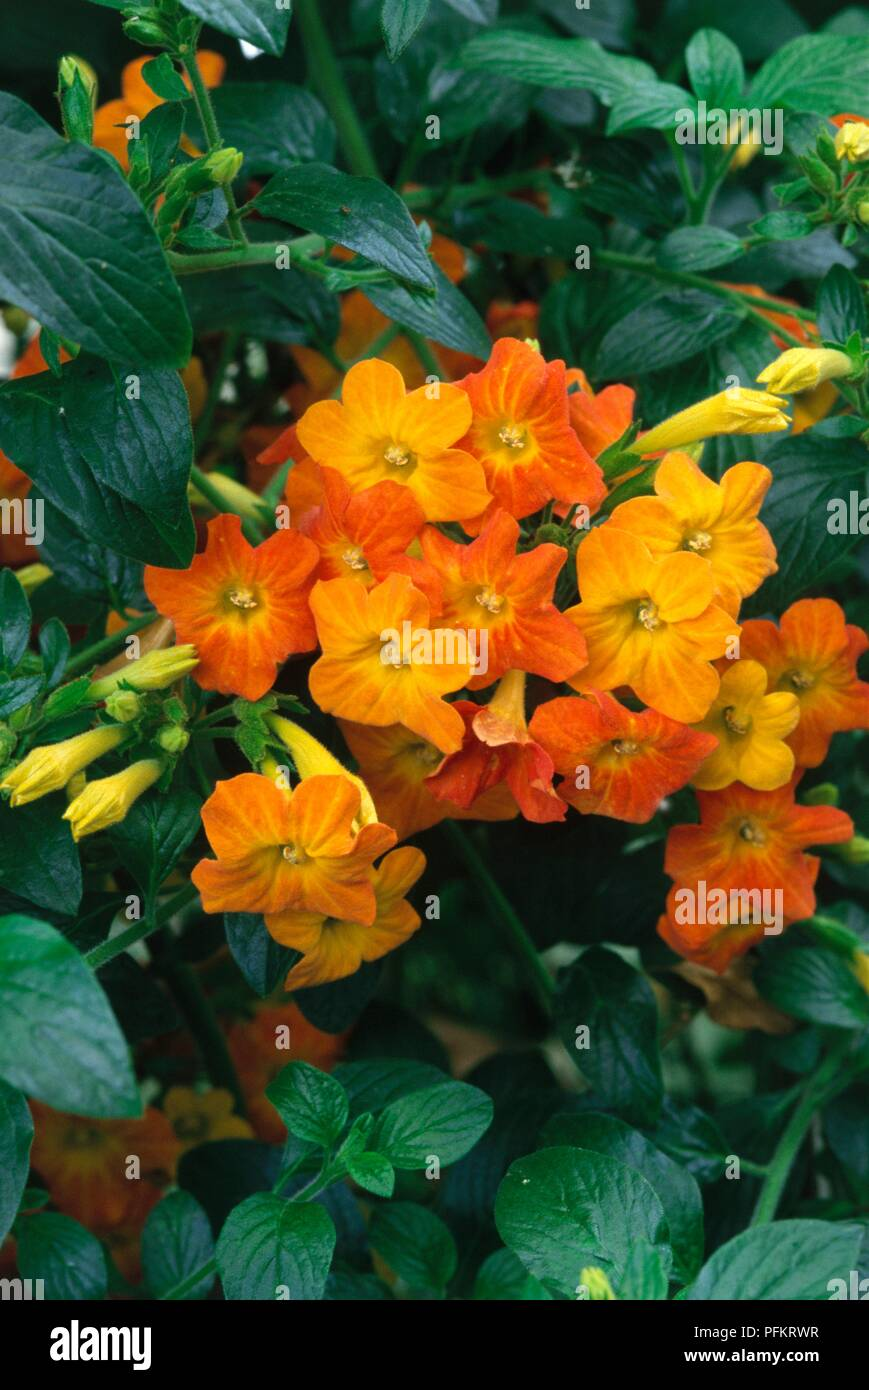 Leaves And Orange And Yellow Flowers From Streptosolen Jamesonii